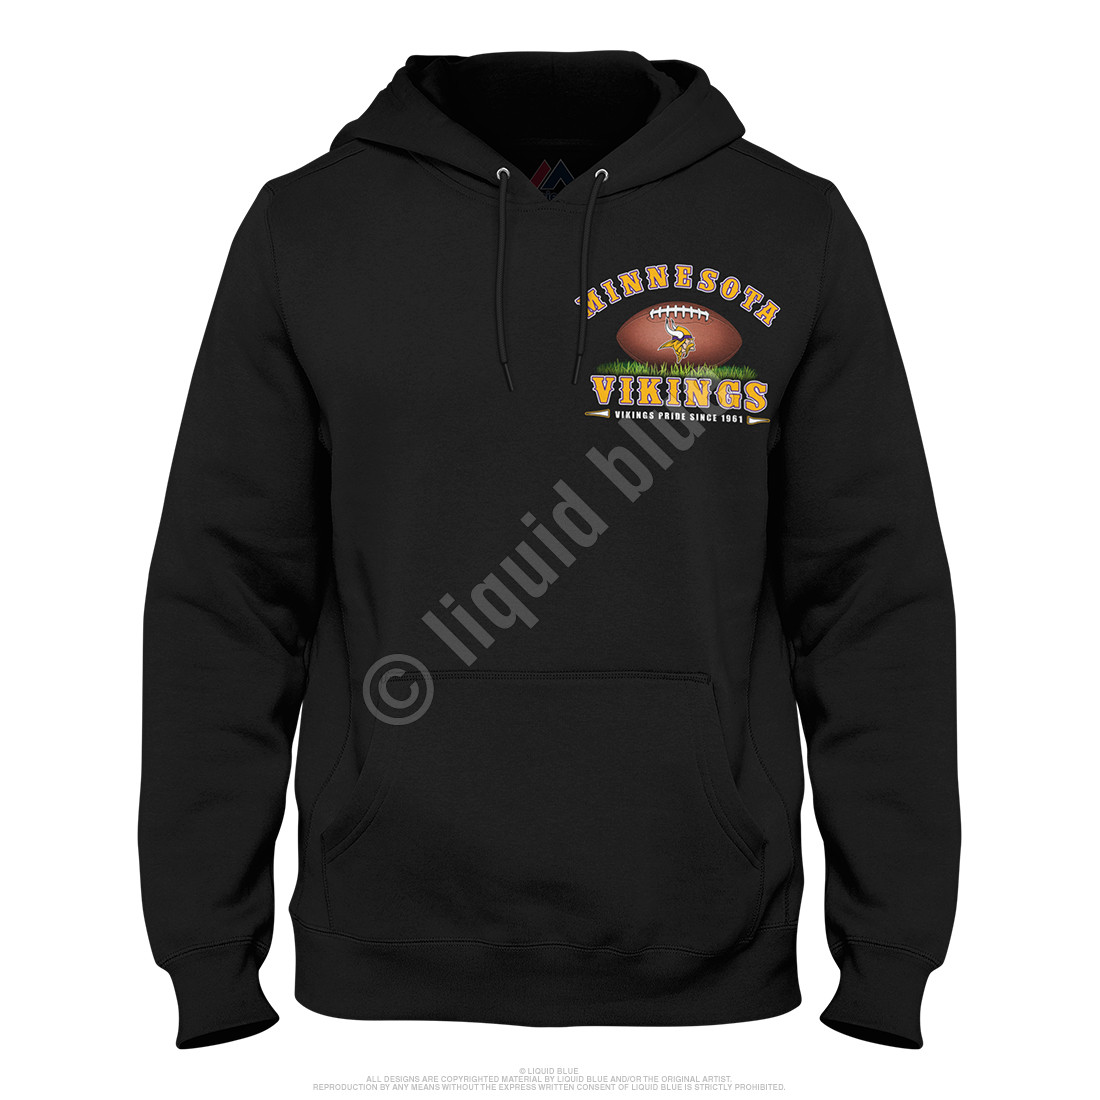 Minnesota Vikings End Zone Black Hoodie